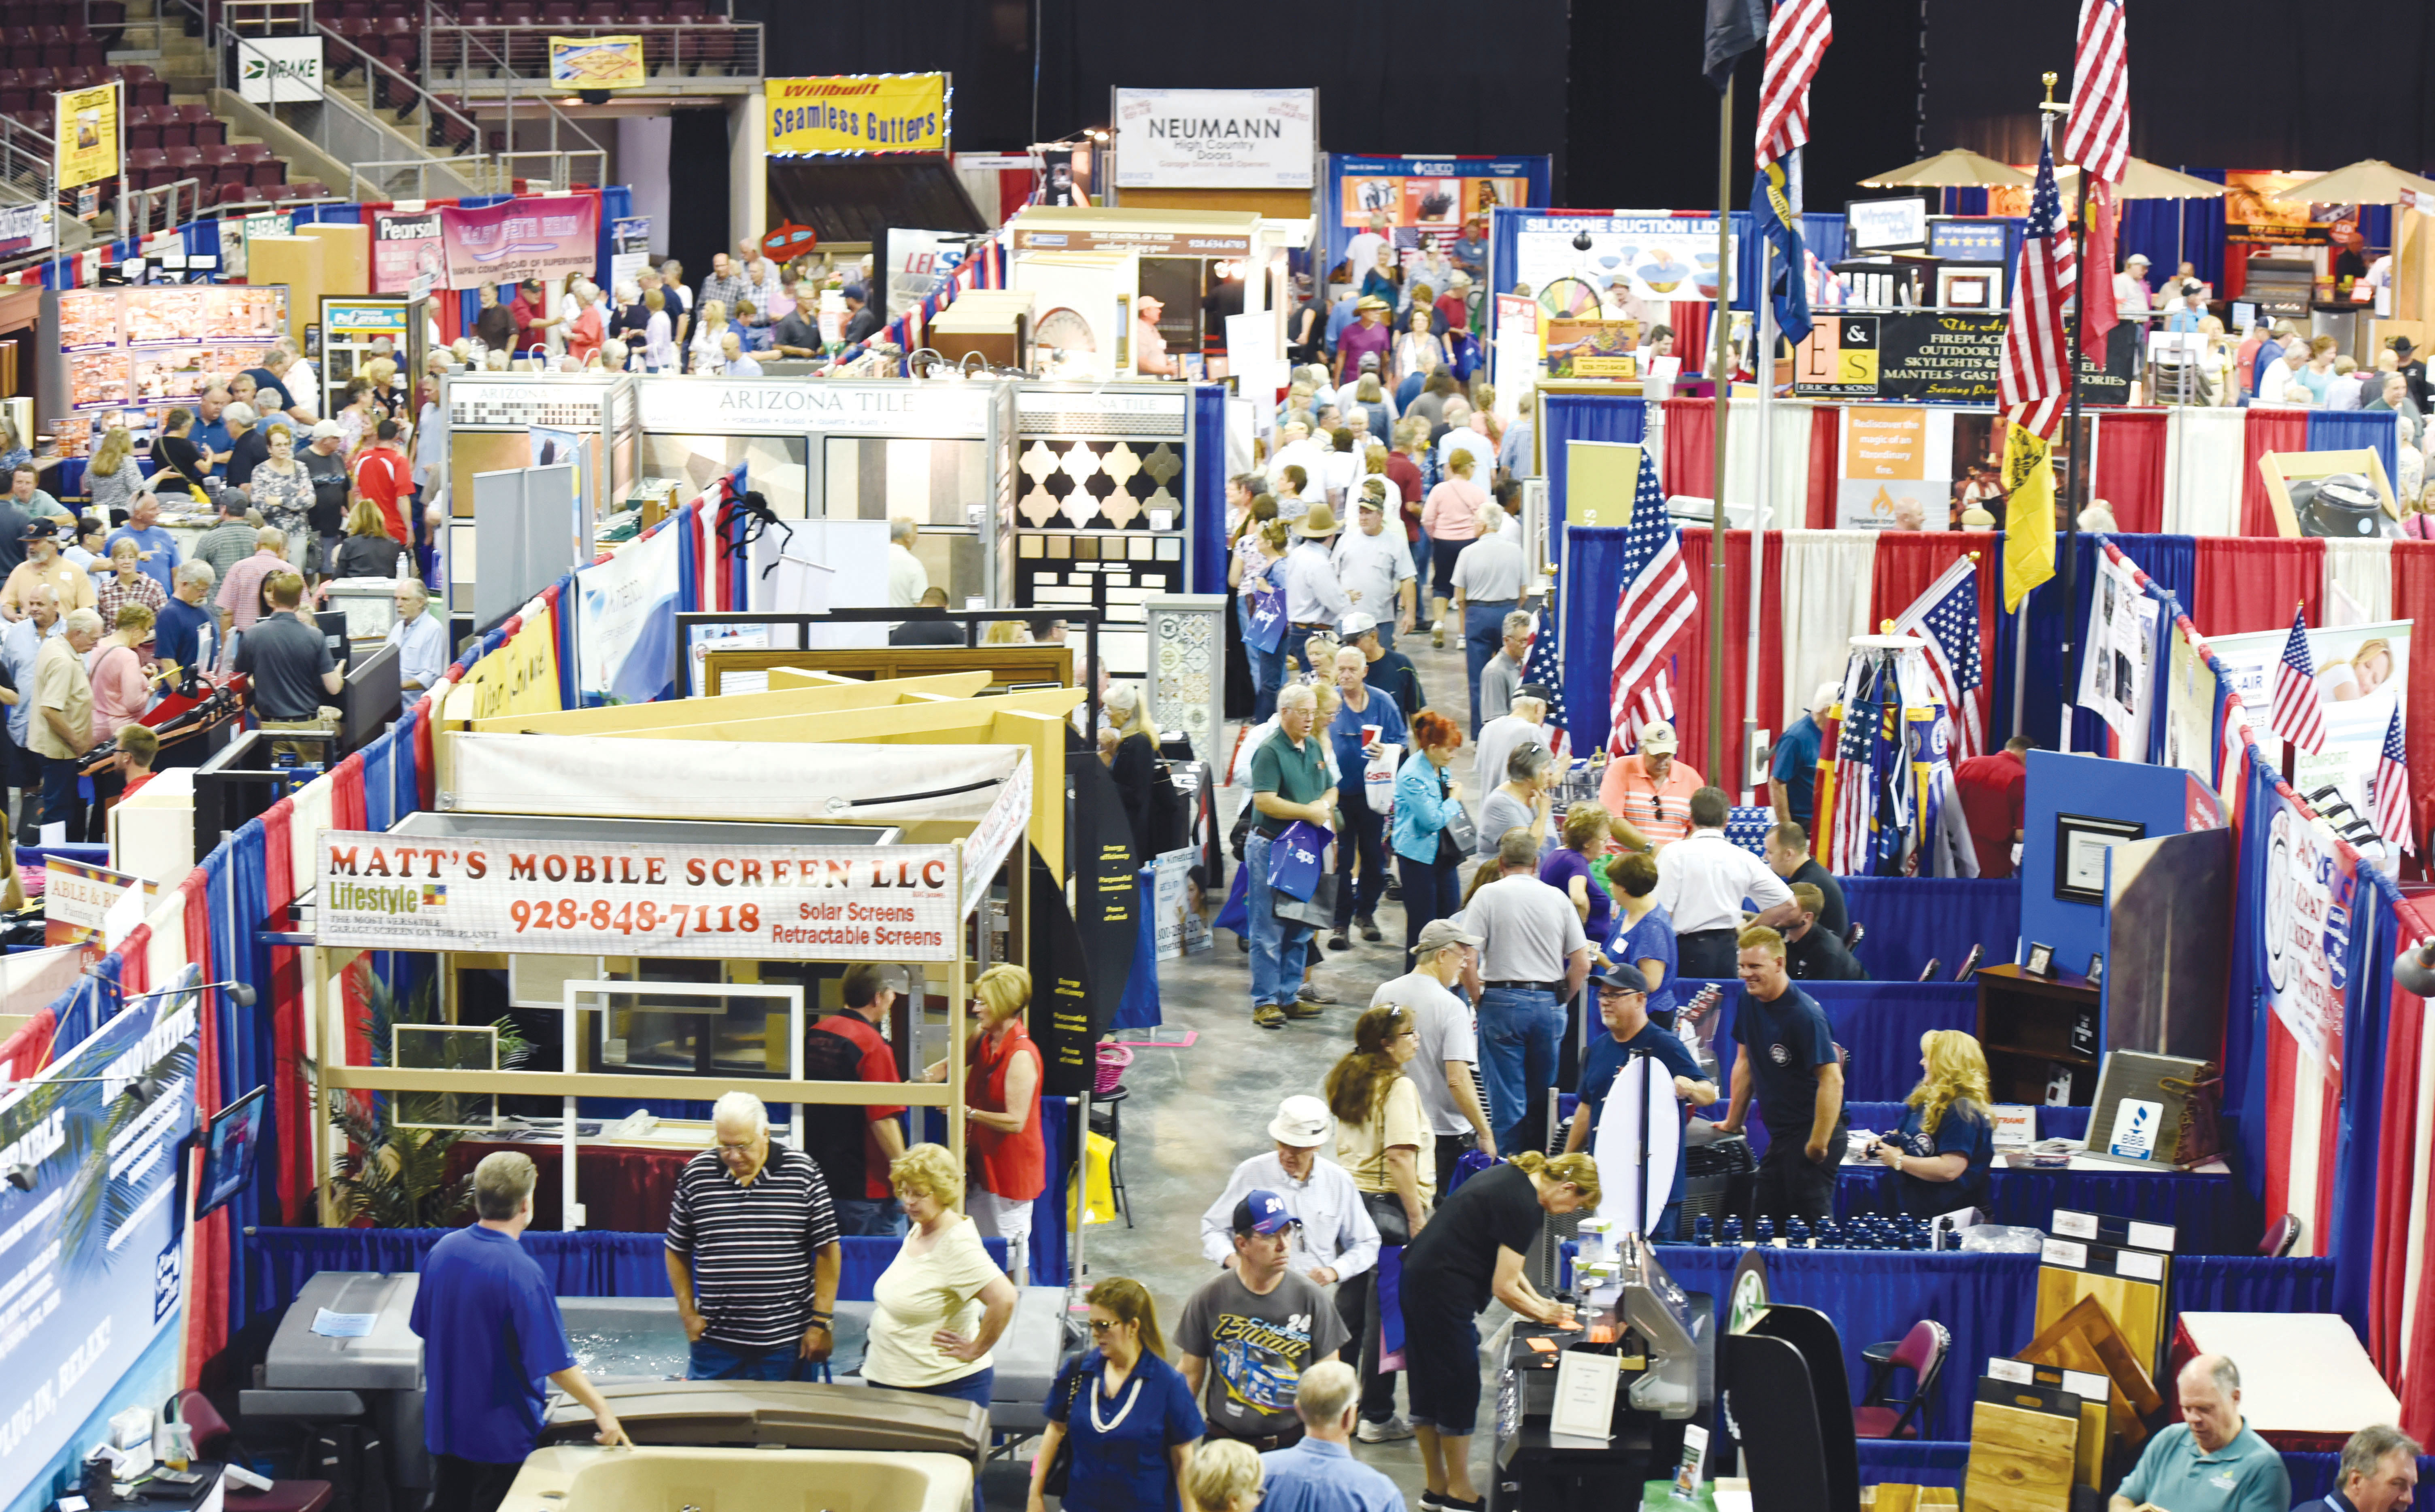 Ask The Contractor Home And Garden Show Set For This Weekend In Prescott Valley Chino Valley